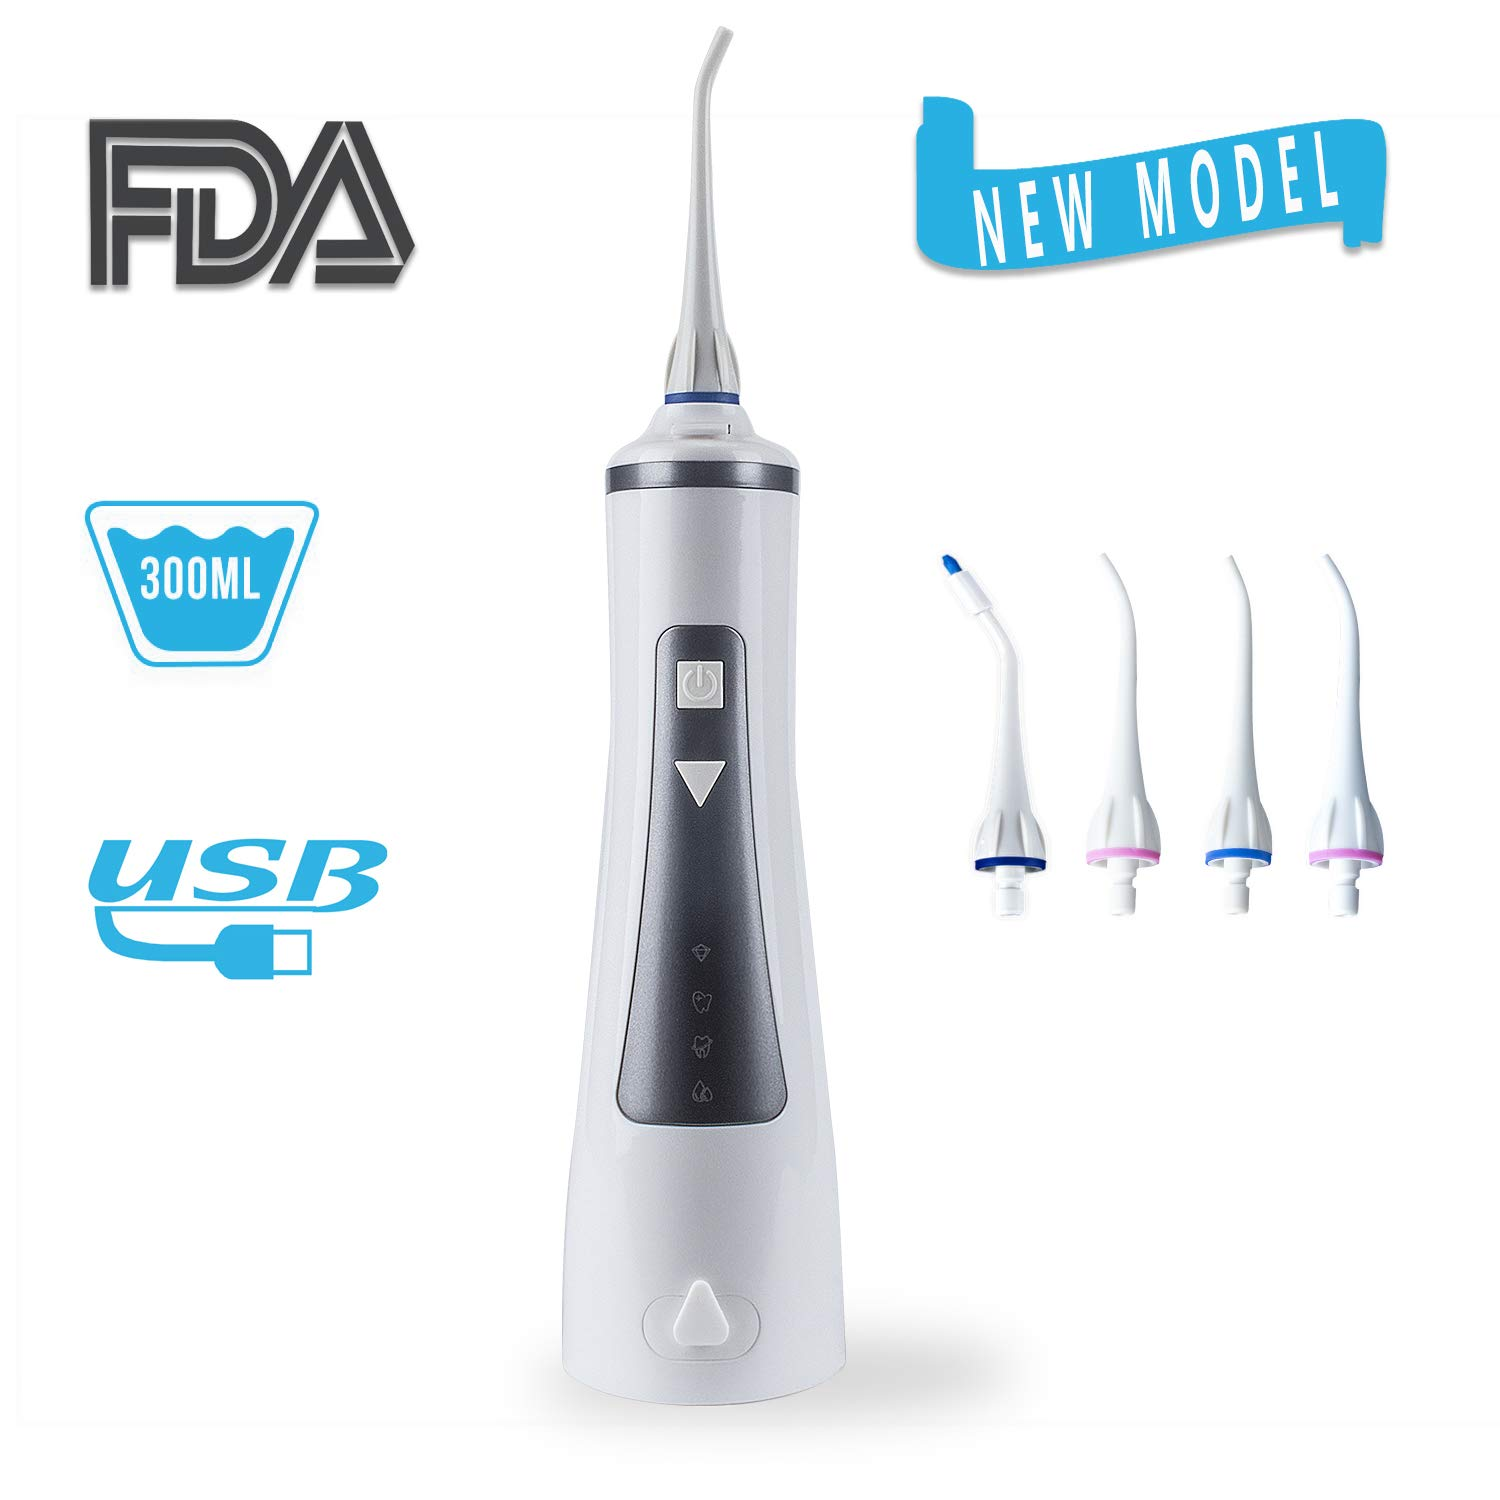 Cordless Water Flosser Oral Irrigator with 4 Modes for Braces and Teeth, Rechargeable Dental Flosser with 4 Jet Tips, 300ML Reservoir, IPX7 Waterproof for Home and Travel